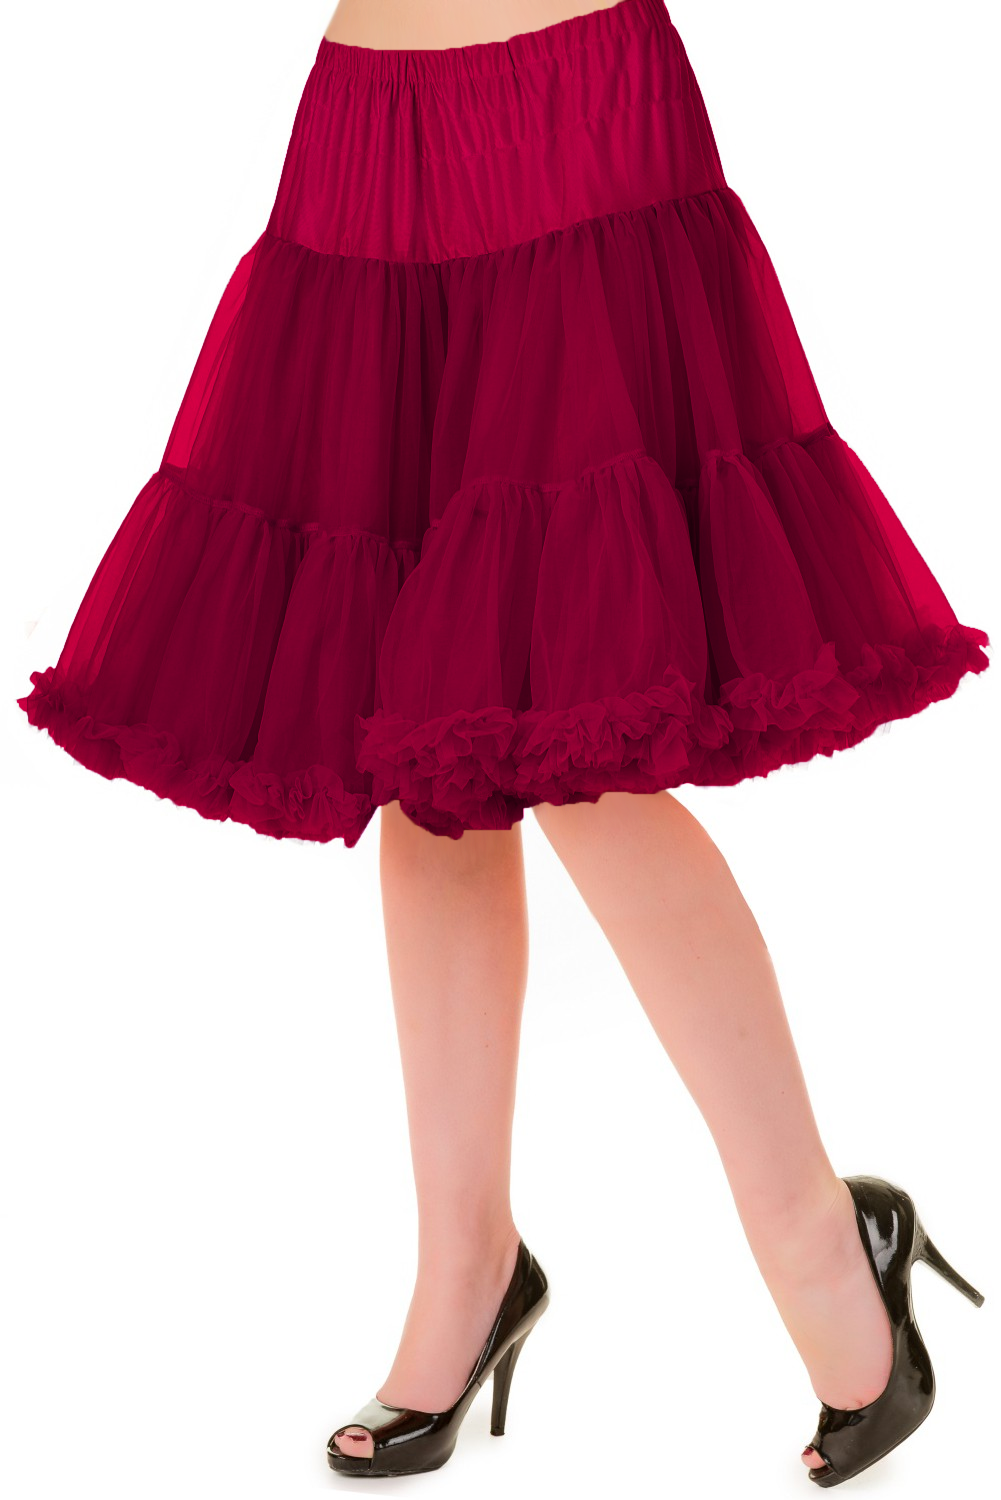 Banned Retro 50s Walkabout Bordeaux Petticoat